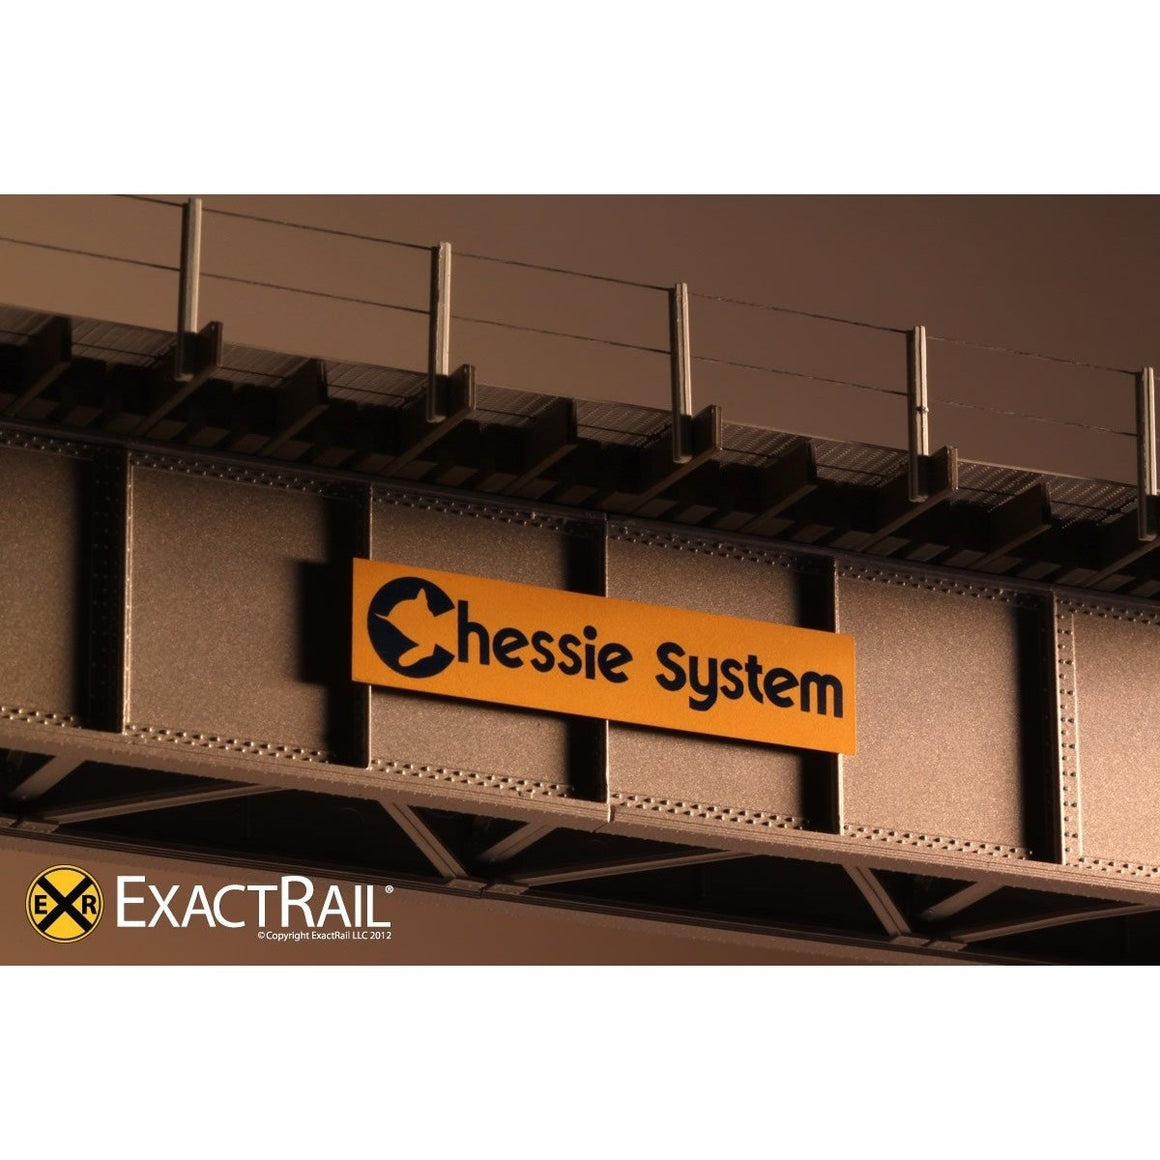 HO Scale: 72' Deck Plate Girder Bridge - Cable Handrails - Chessie System